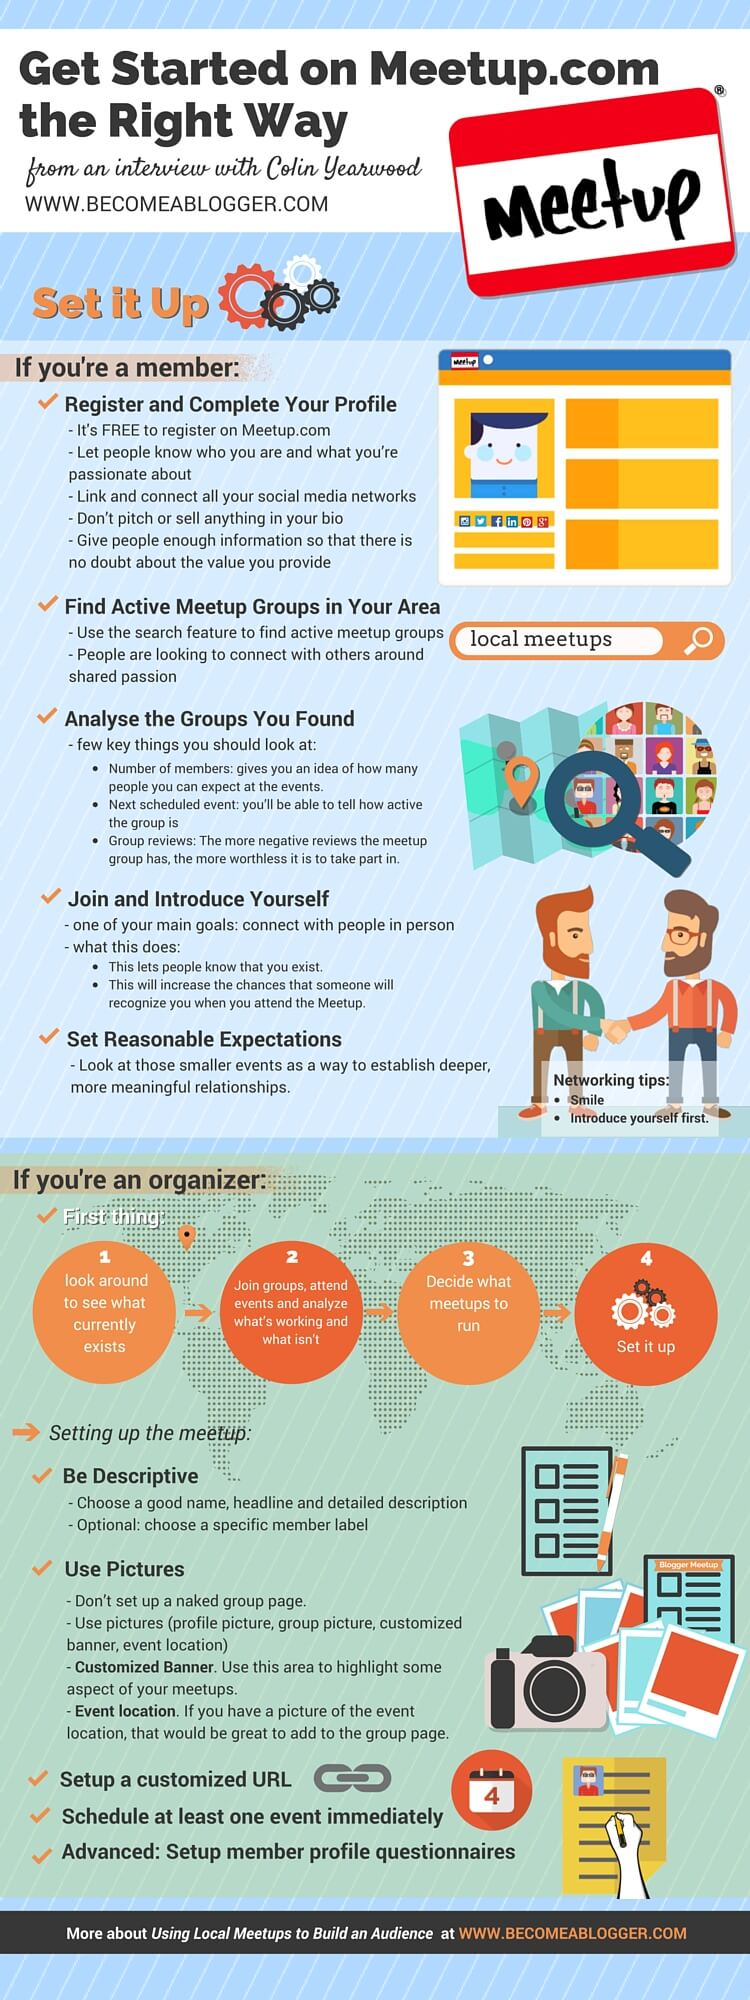 249_Colin Yearwood_Infographic